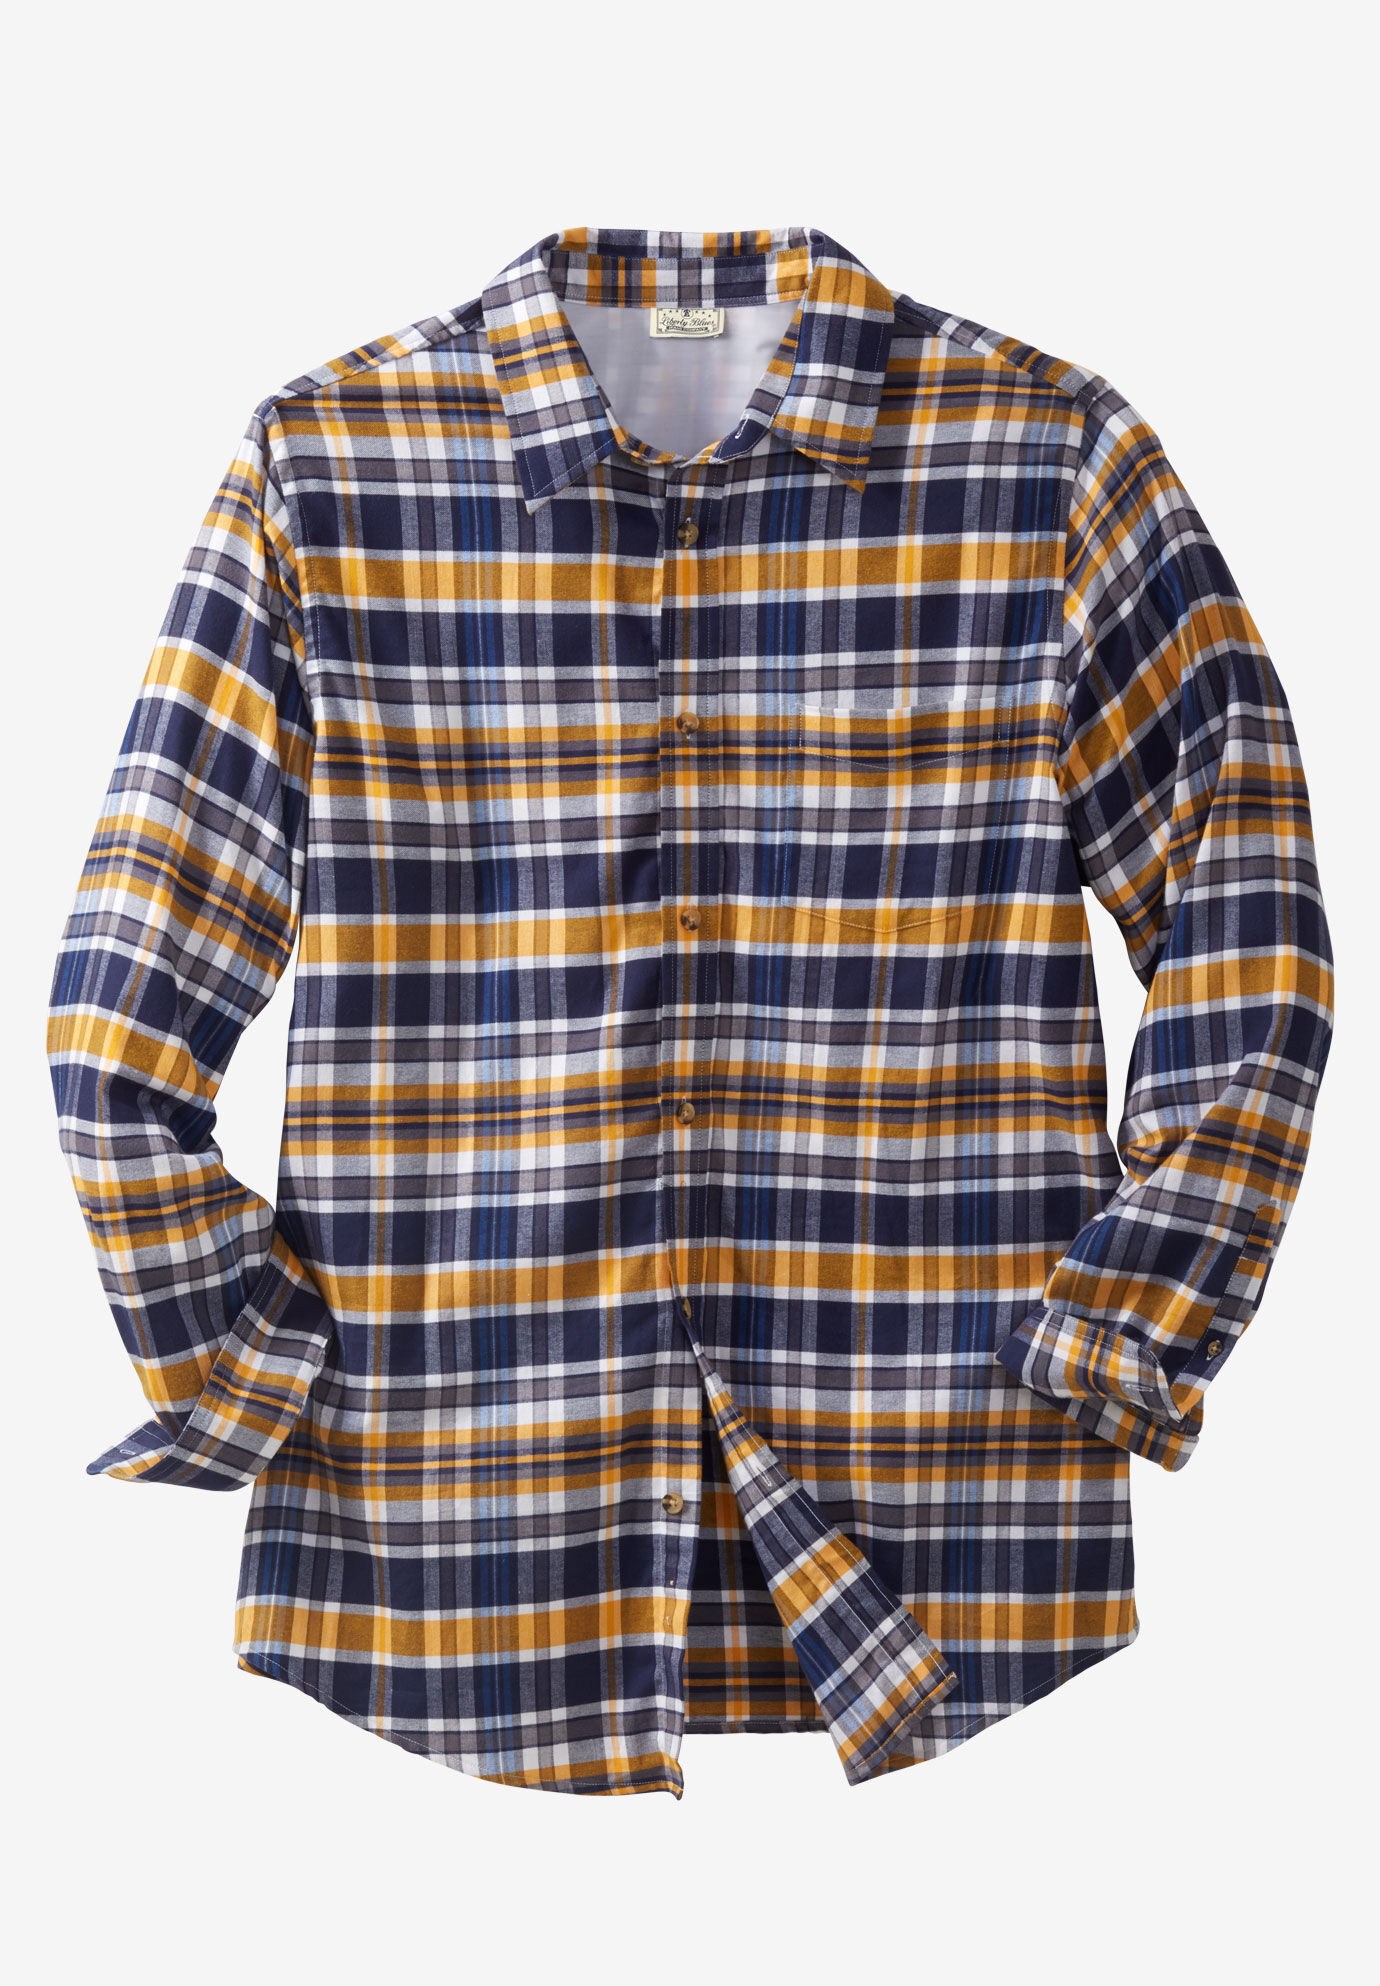 Big & Tall Outlet Clearance for Men's Clothing | King Size